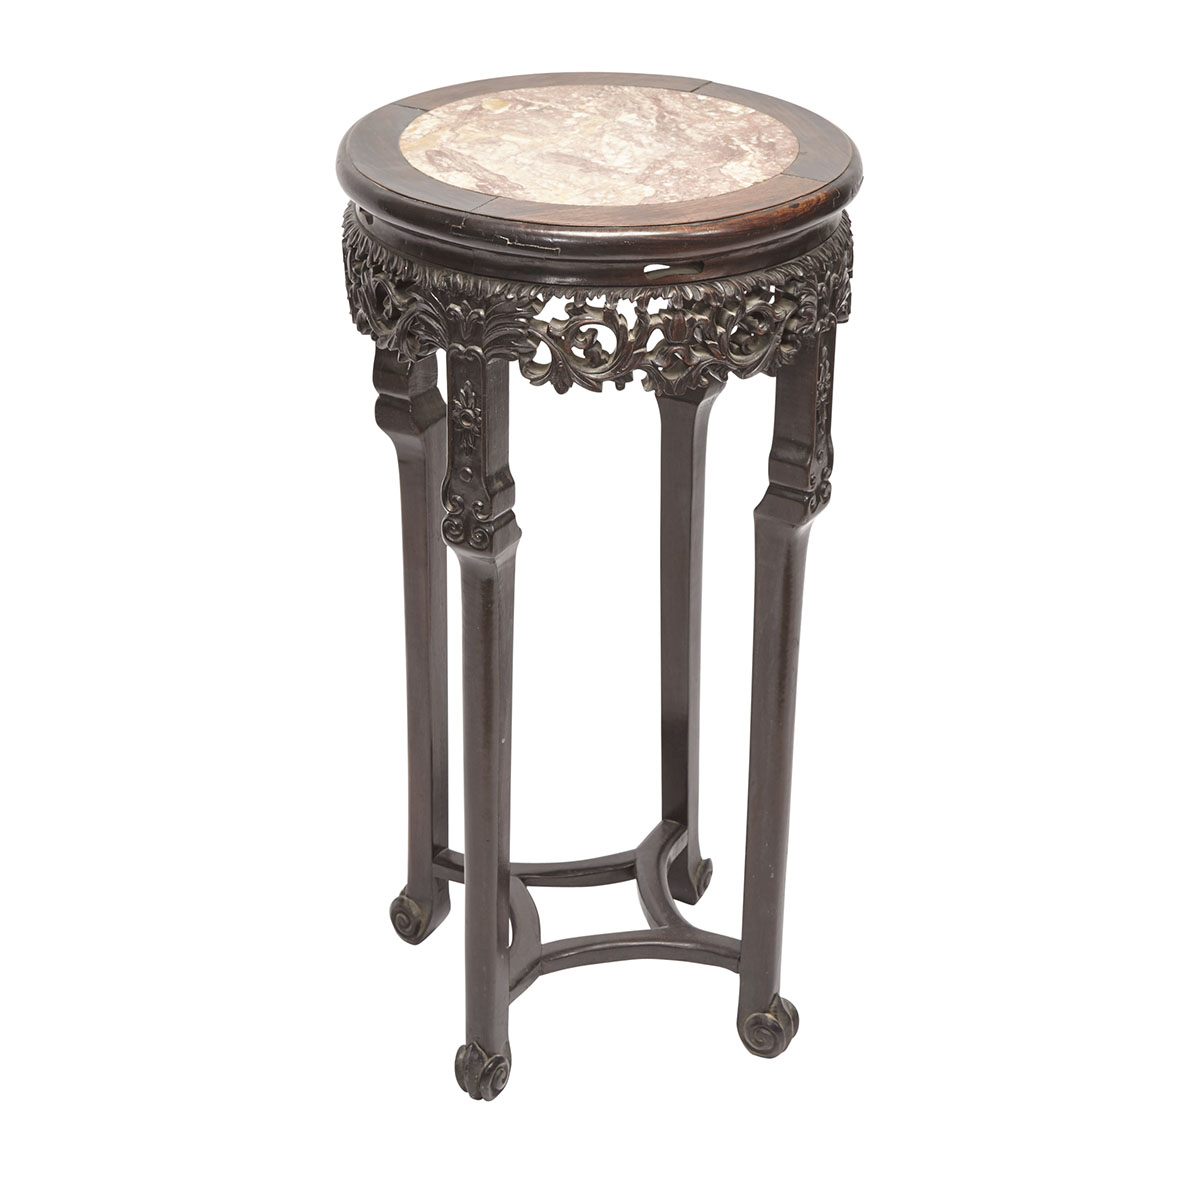 Chinese Rosewood and Marble Topped Table Circa 1900